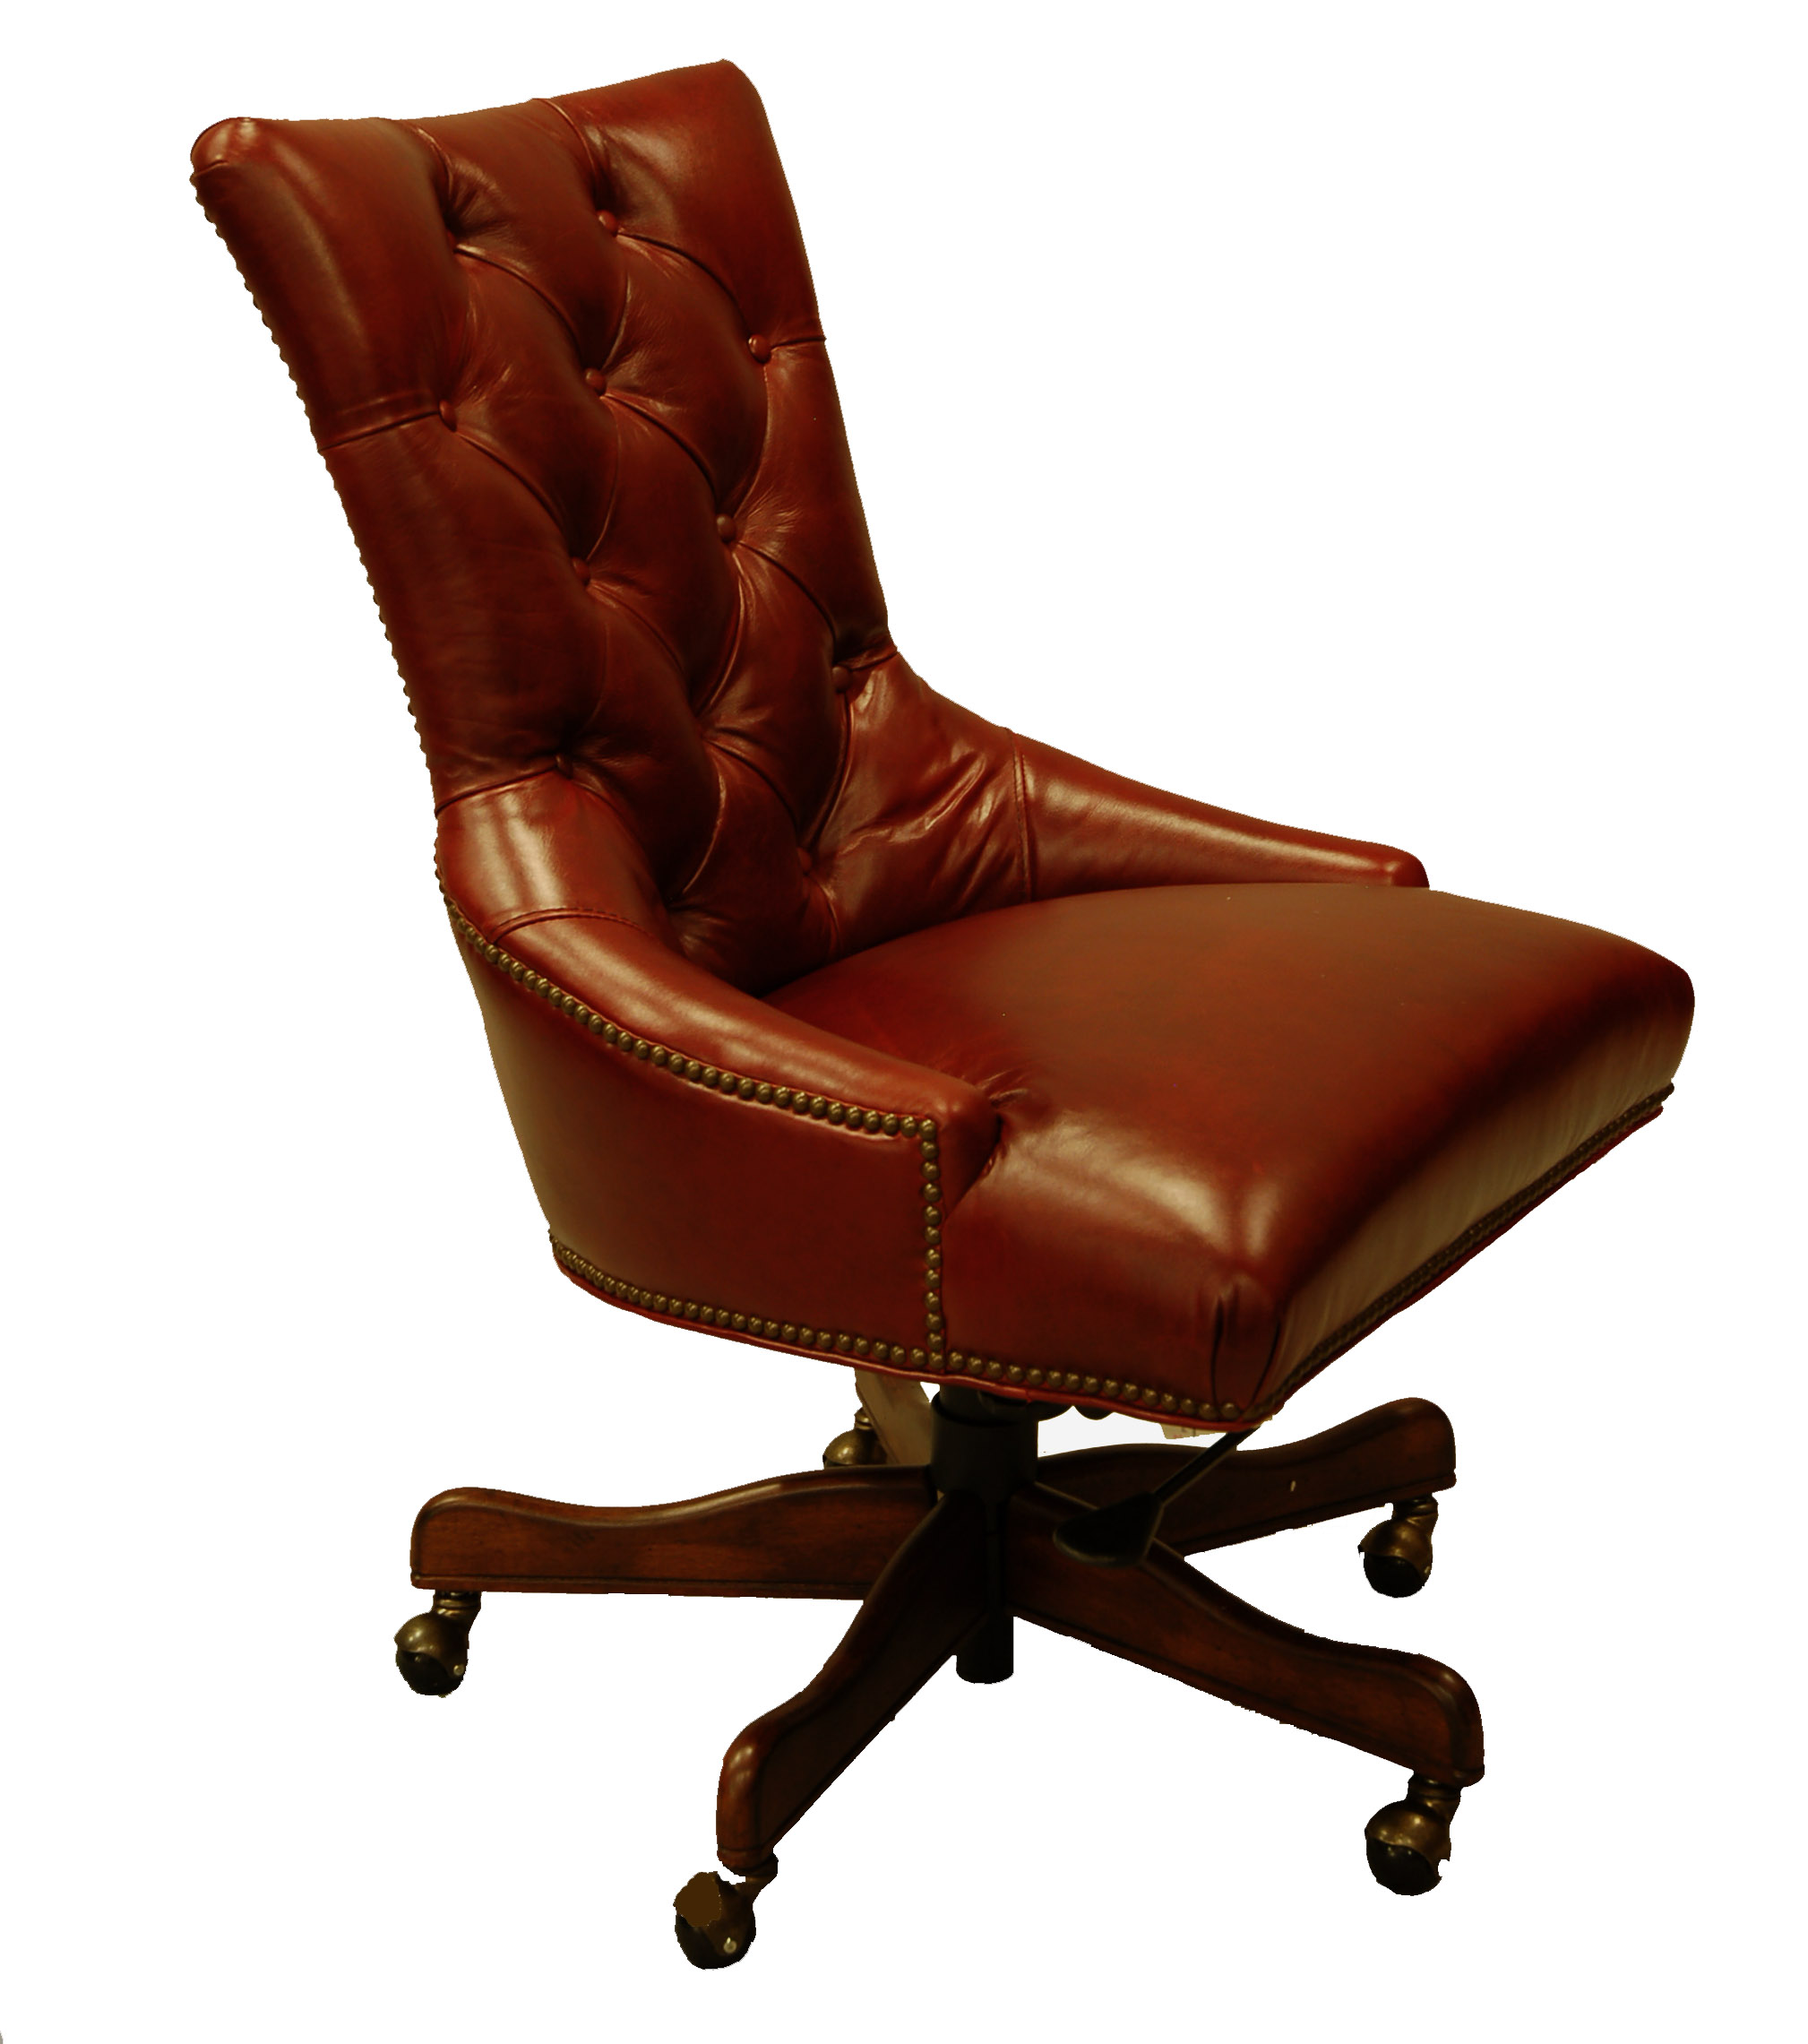 red leather executive office desk chair ebay. Black Bedroom Furniture Sets. Home Design Ideas